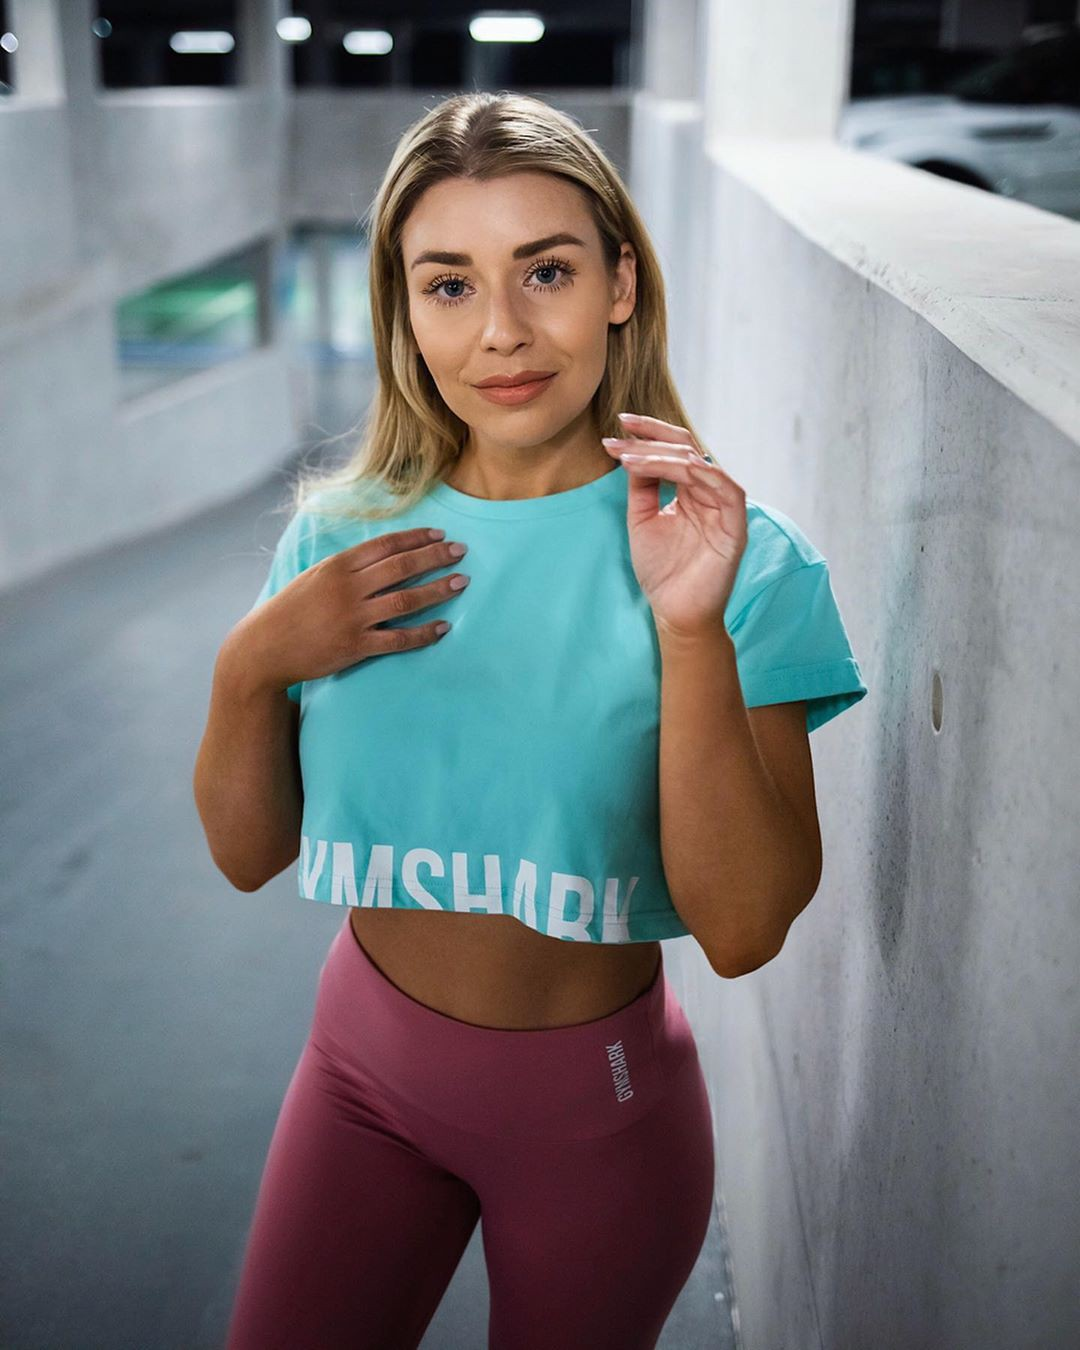 Turquoise and pink sportswear, fashion photoshoot, body muscle